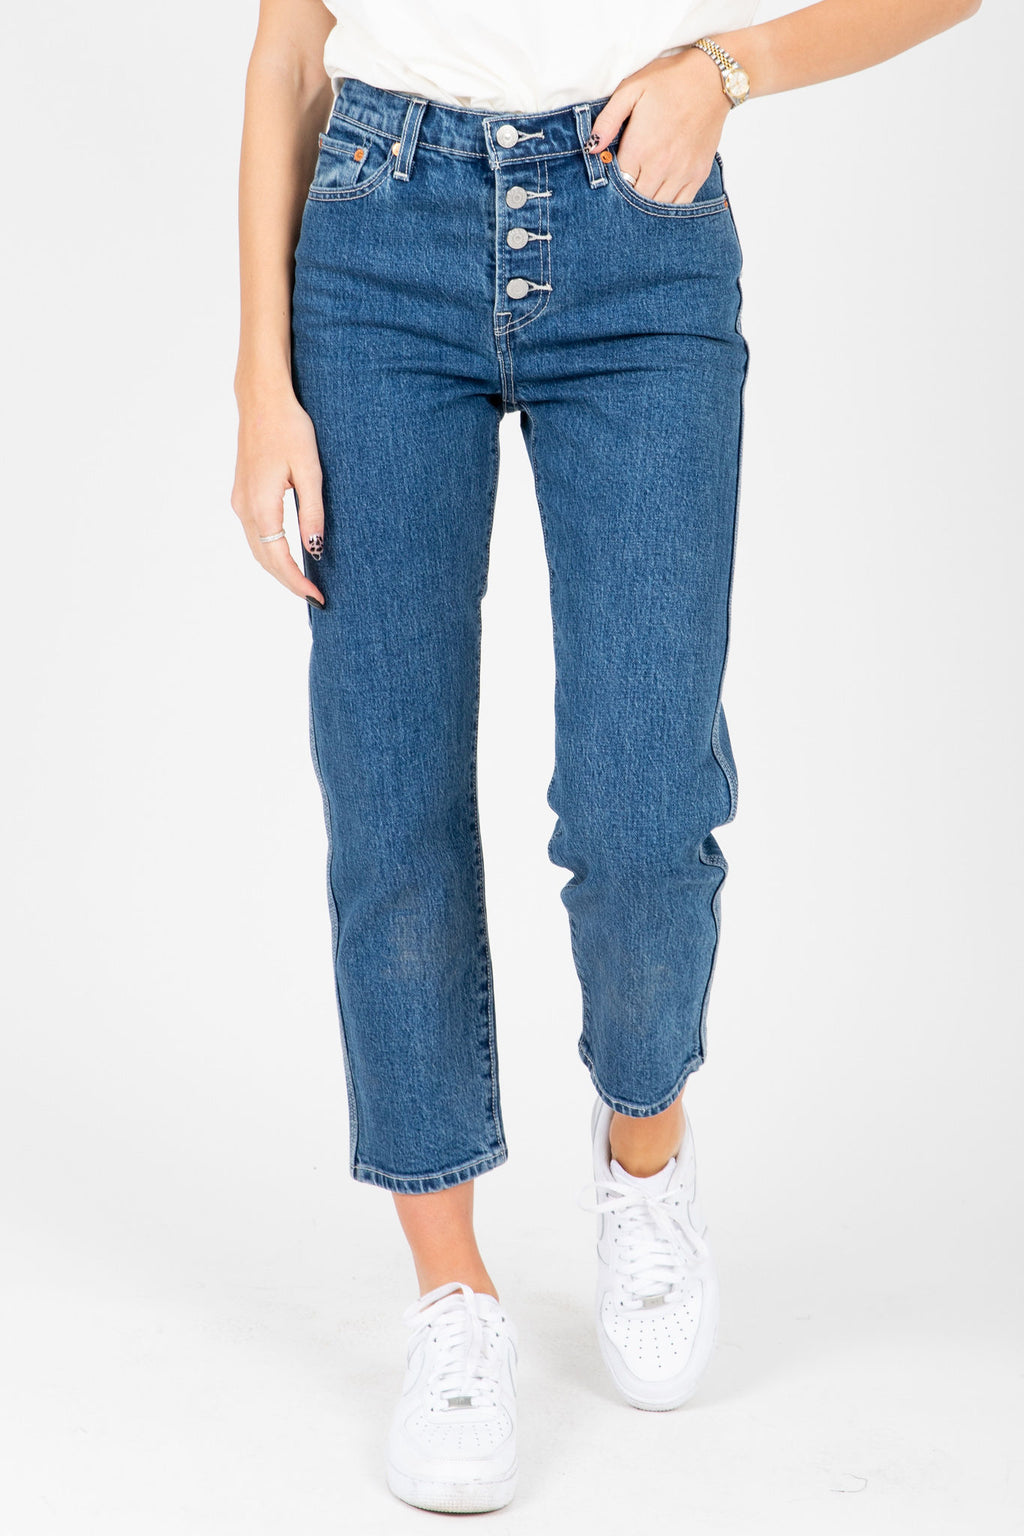 Levi's: Wedgie Fit Straight Utility Jeans in Middle Sister, studio shot; front view